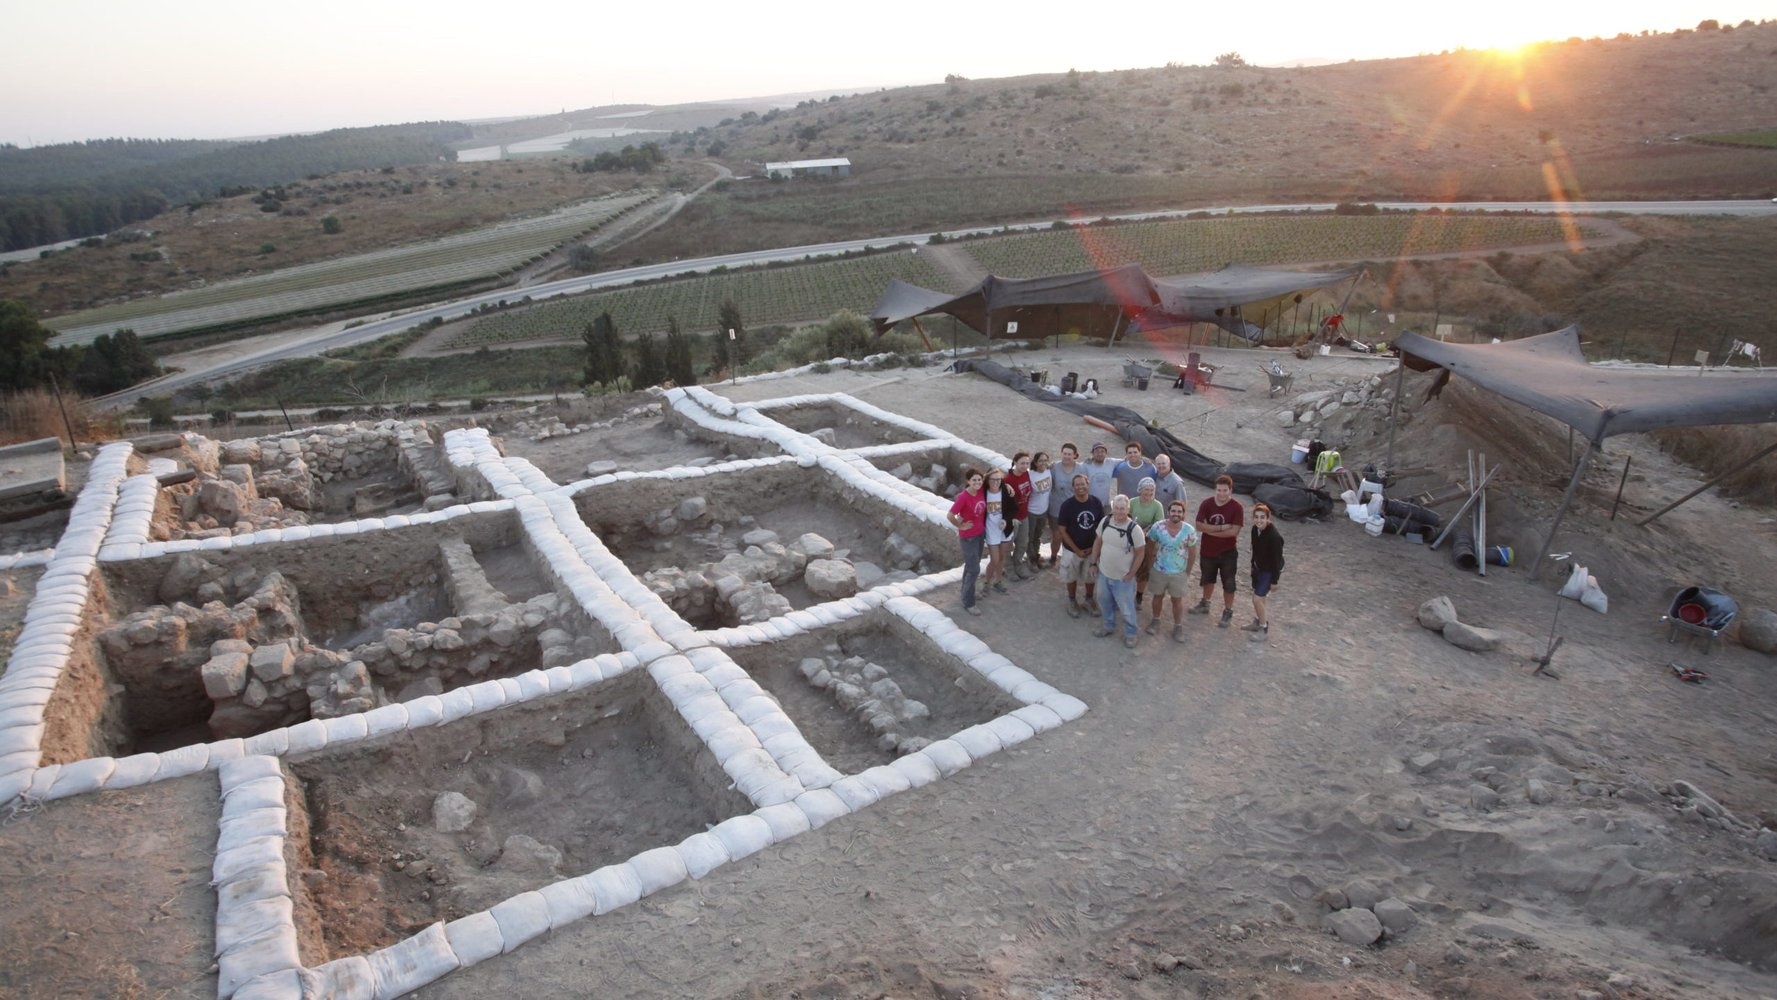 Temple-at-Tel-Lachish_Courtesy-of-the-Fourth-Expedition-to-LachishJPG-scaled-e1581950319948.jpg